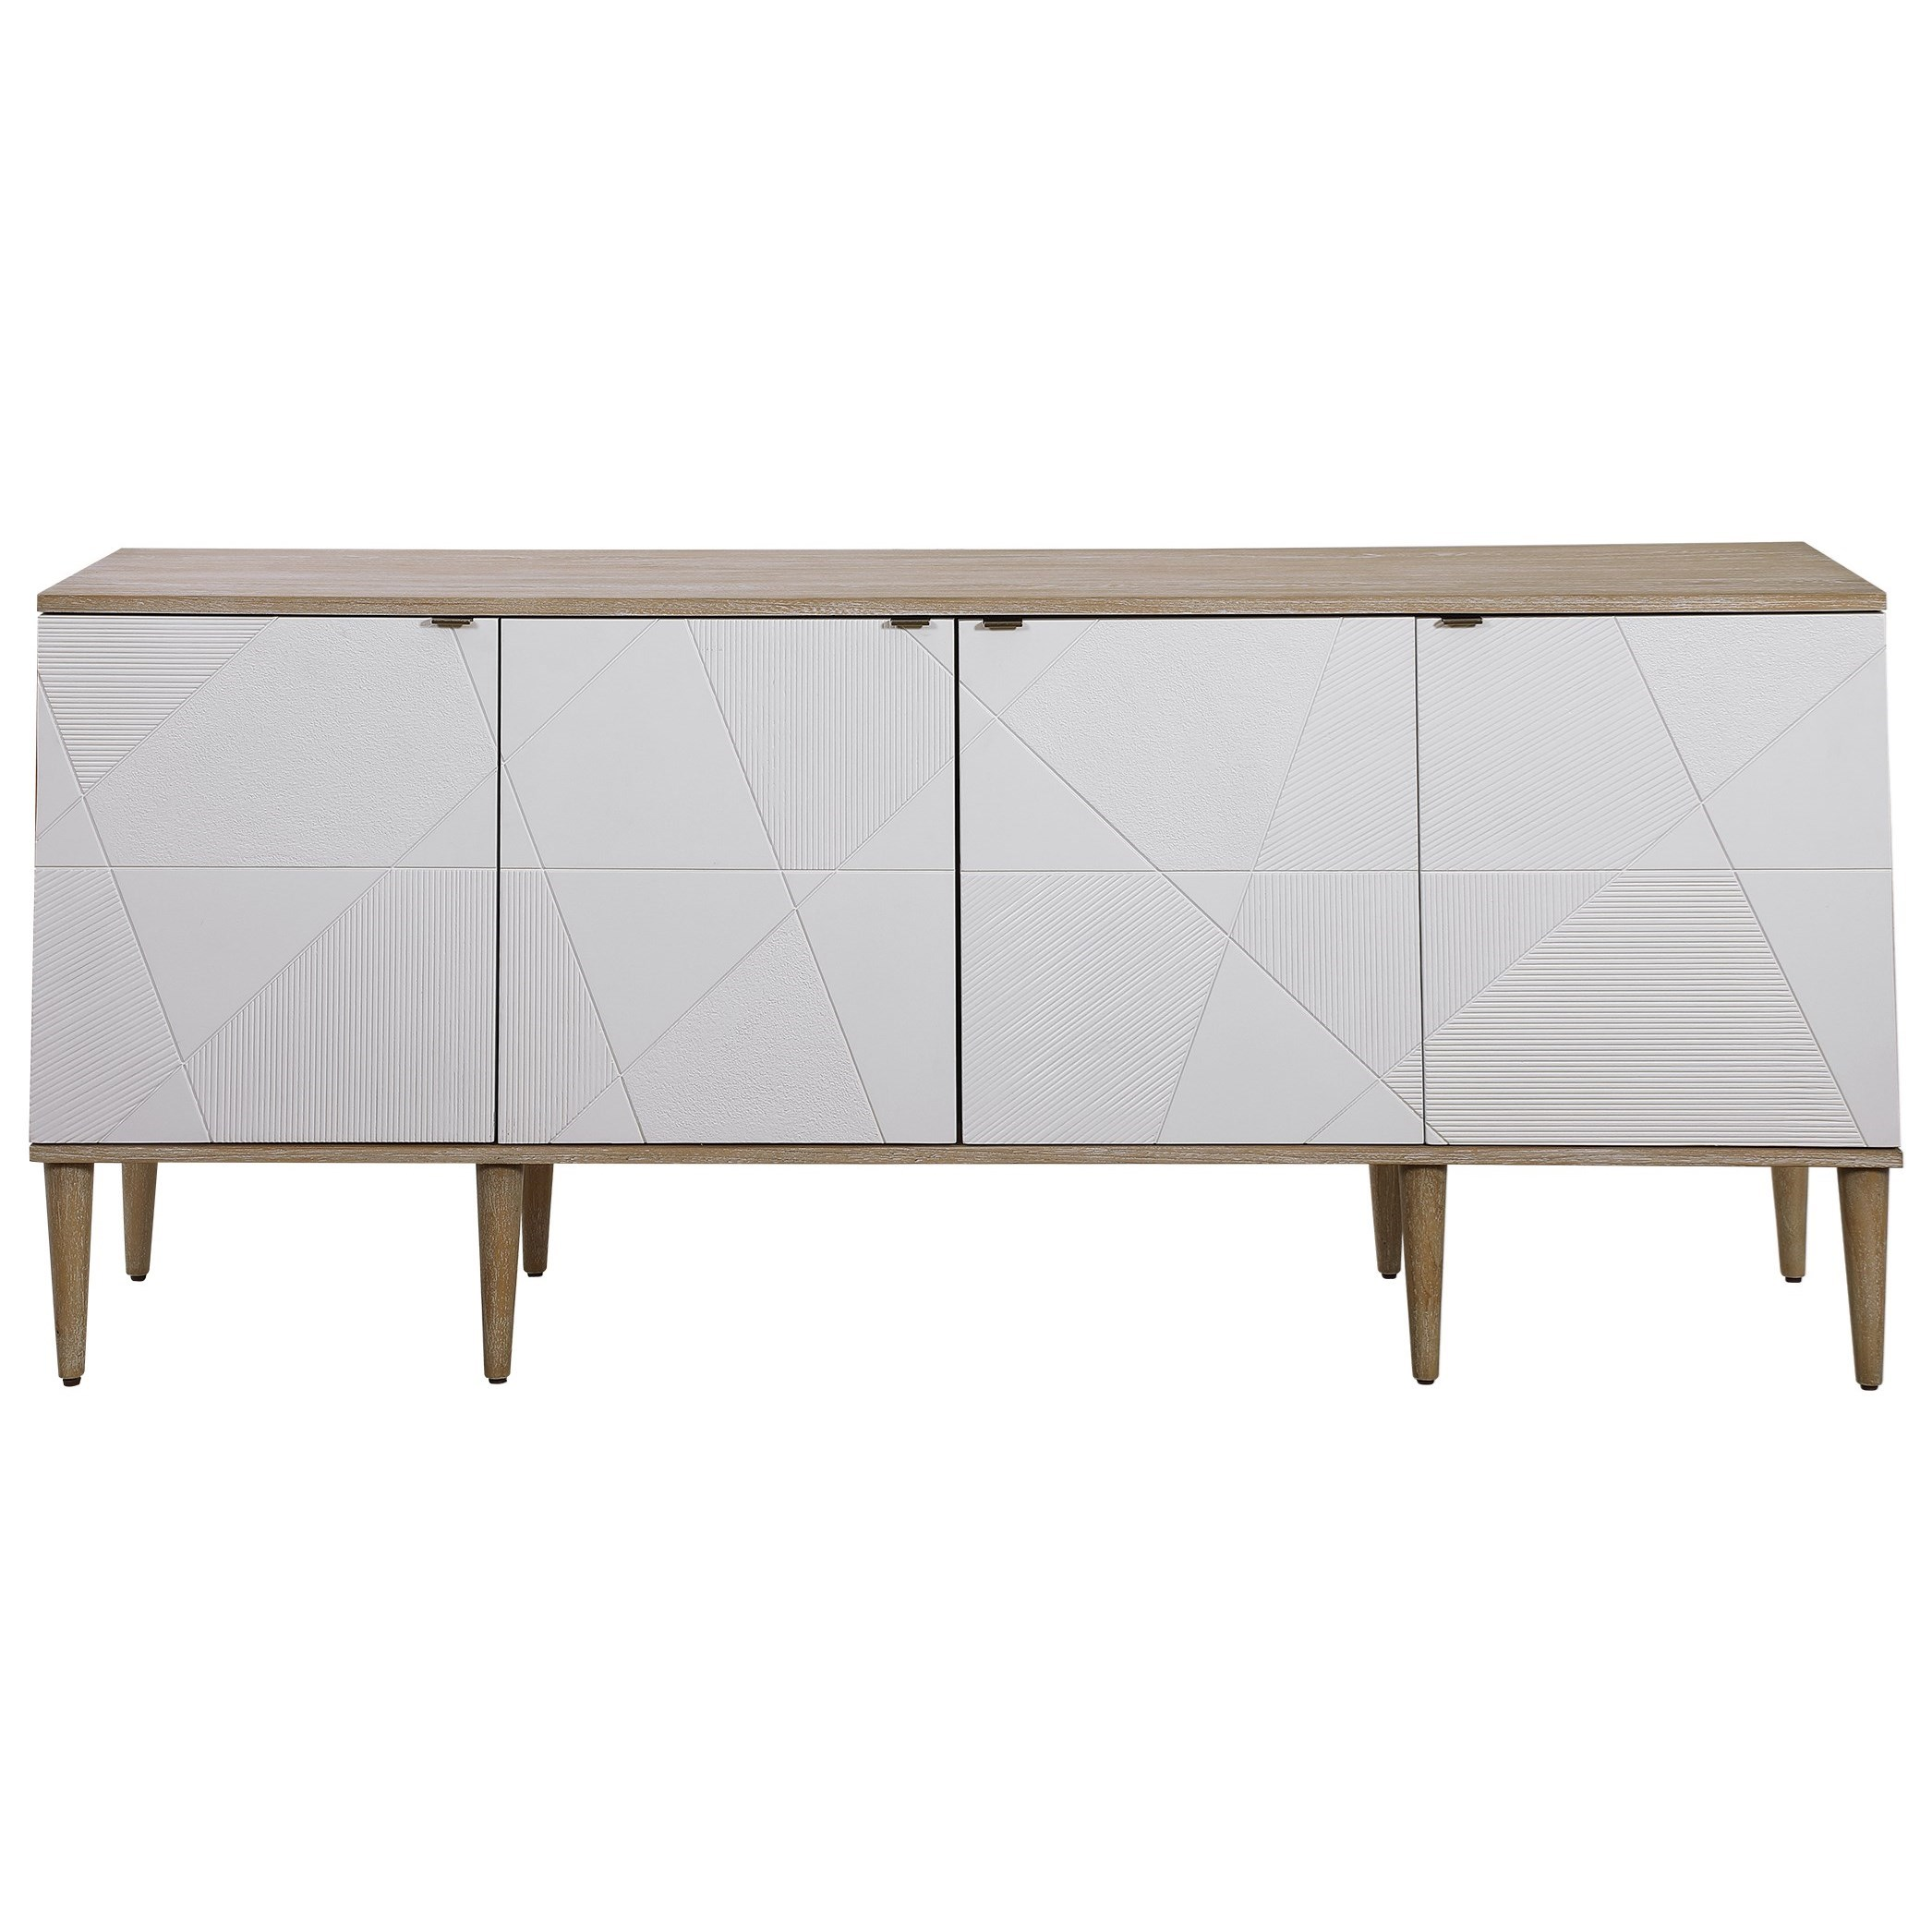 Accent Furniture - Chests Tightrope 4-Door Modern Sideboard Cabinet by Uttermost at Upper Room Home Furnishings